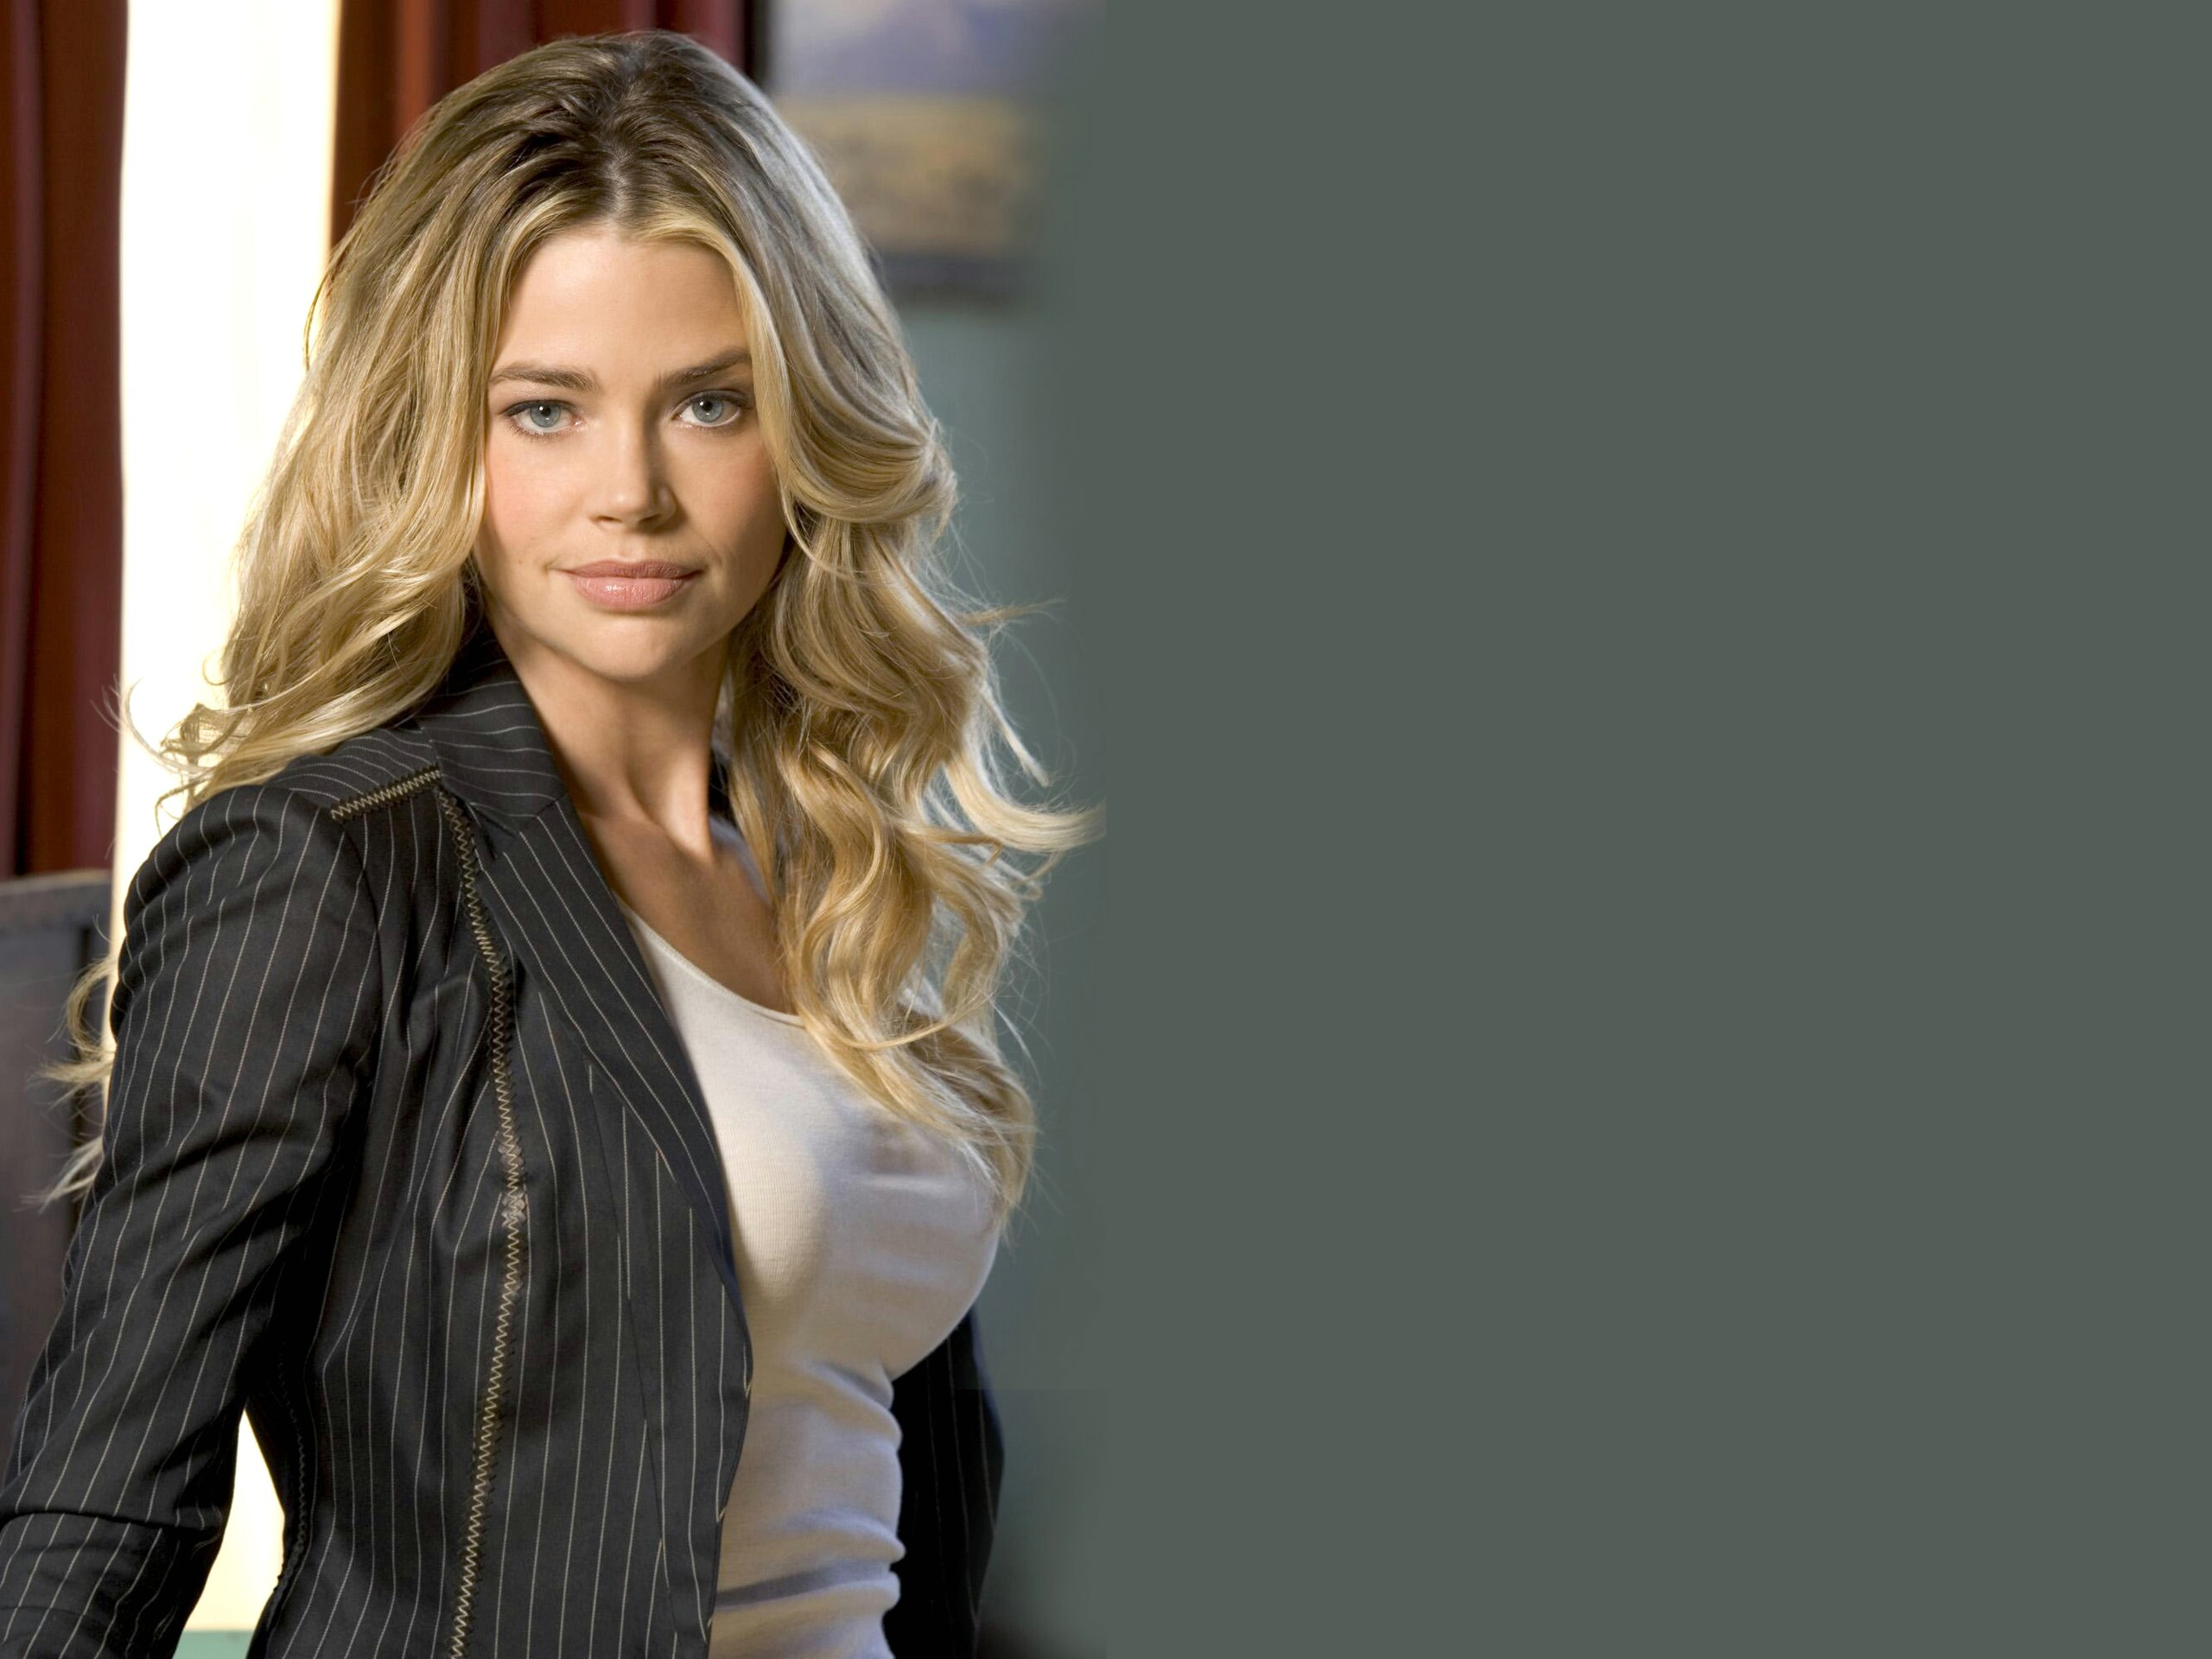 Chicago Bears Hd Wallpaper 20 Hd Denise Richards Wallpapers Hdwallsource Com